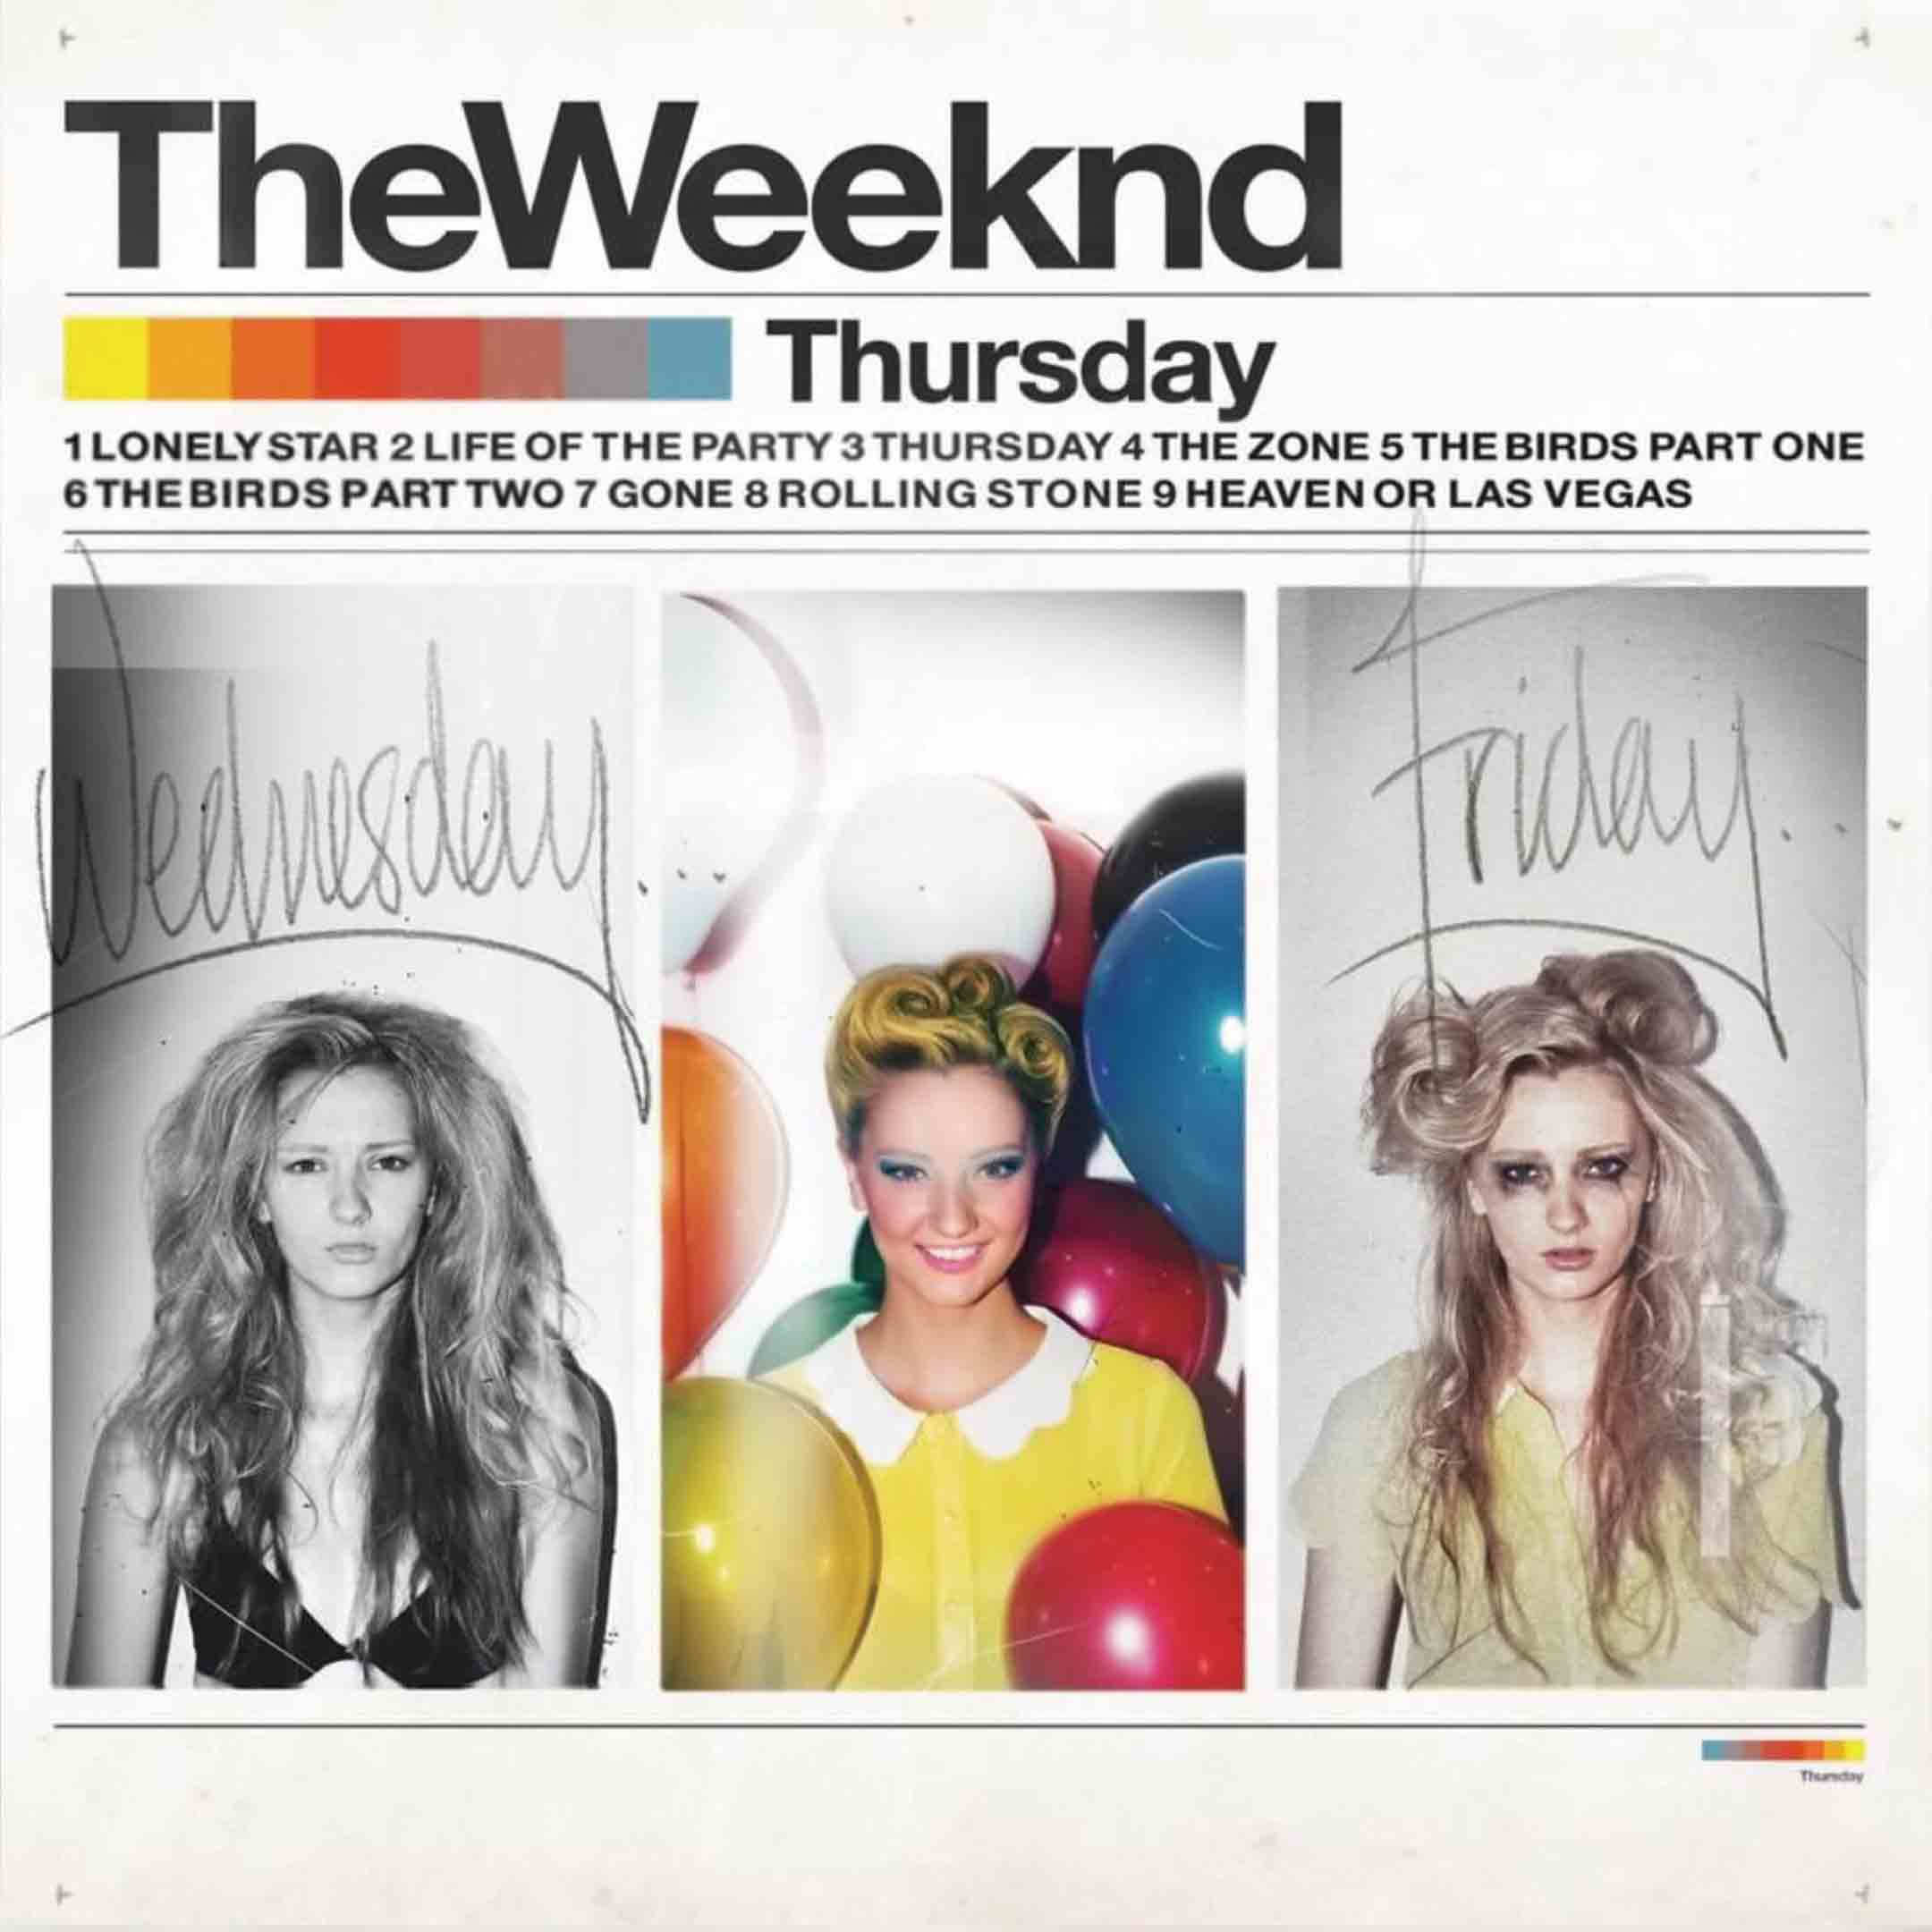 The Weeknd Hot Album Music Thursday Fabric Poster Home Decor H-278